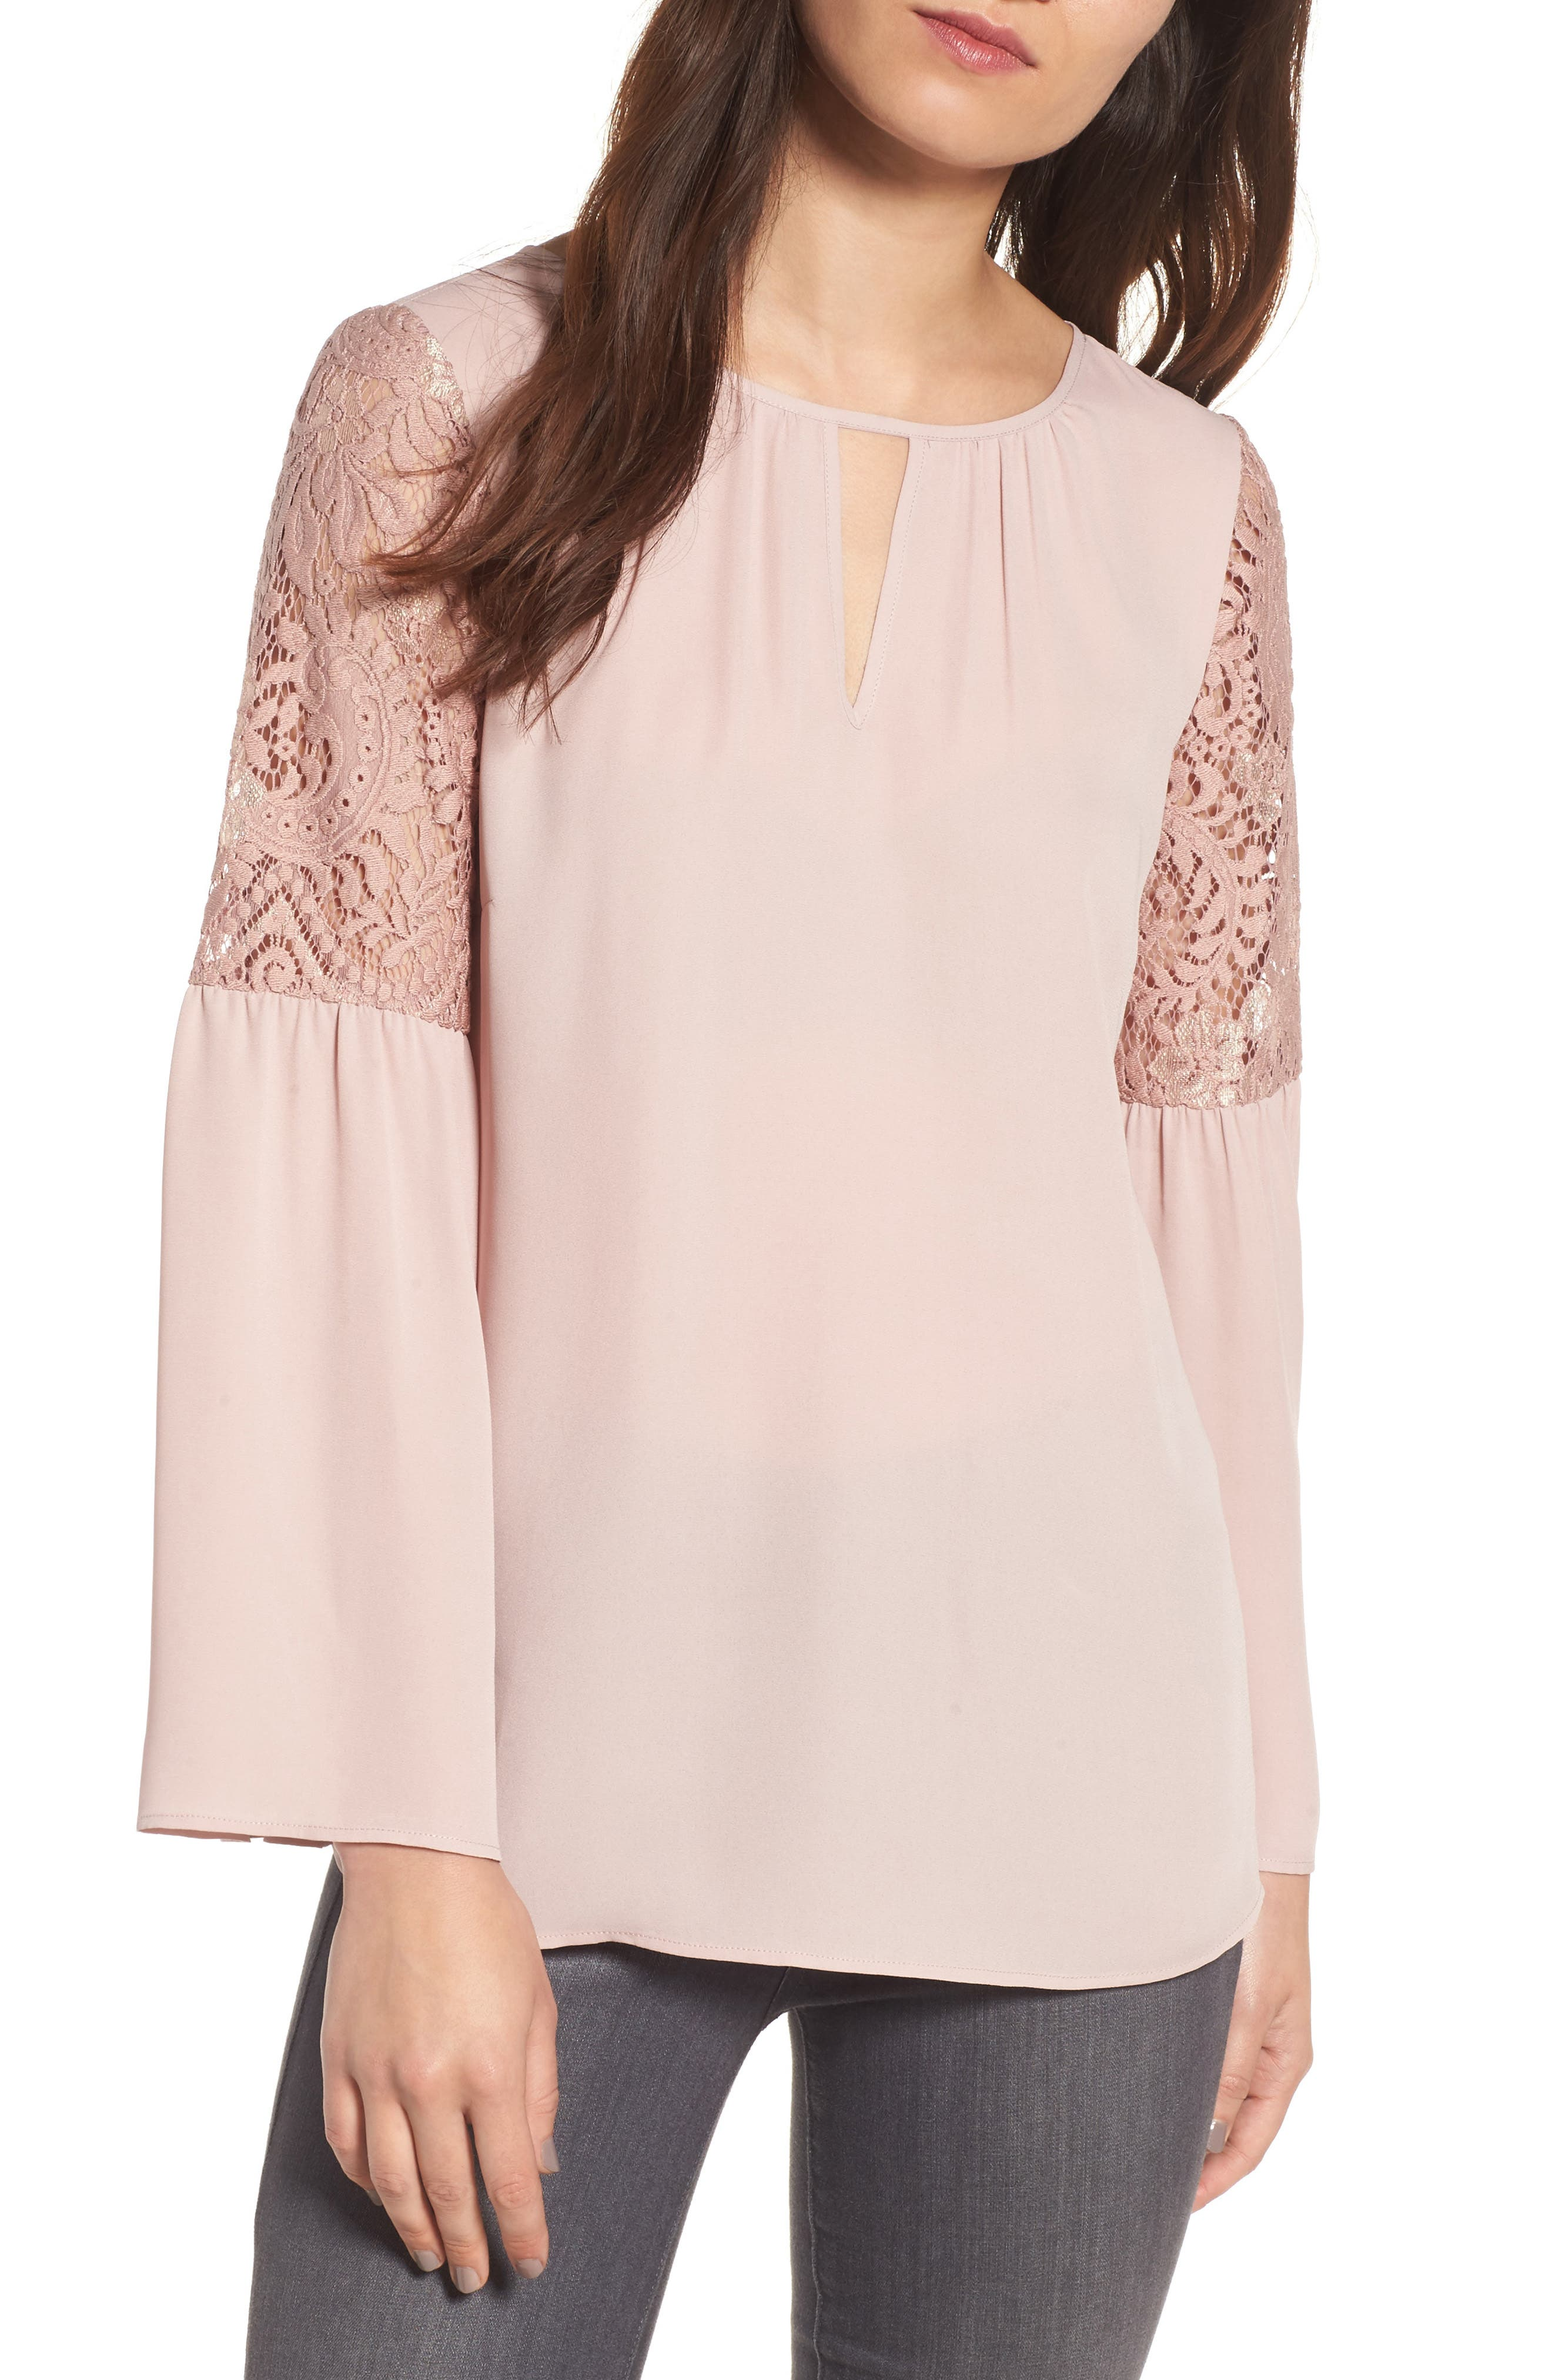 Alternate Image 1 Selected - Chelsea28 Lace Bell Sleeve Top